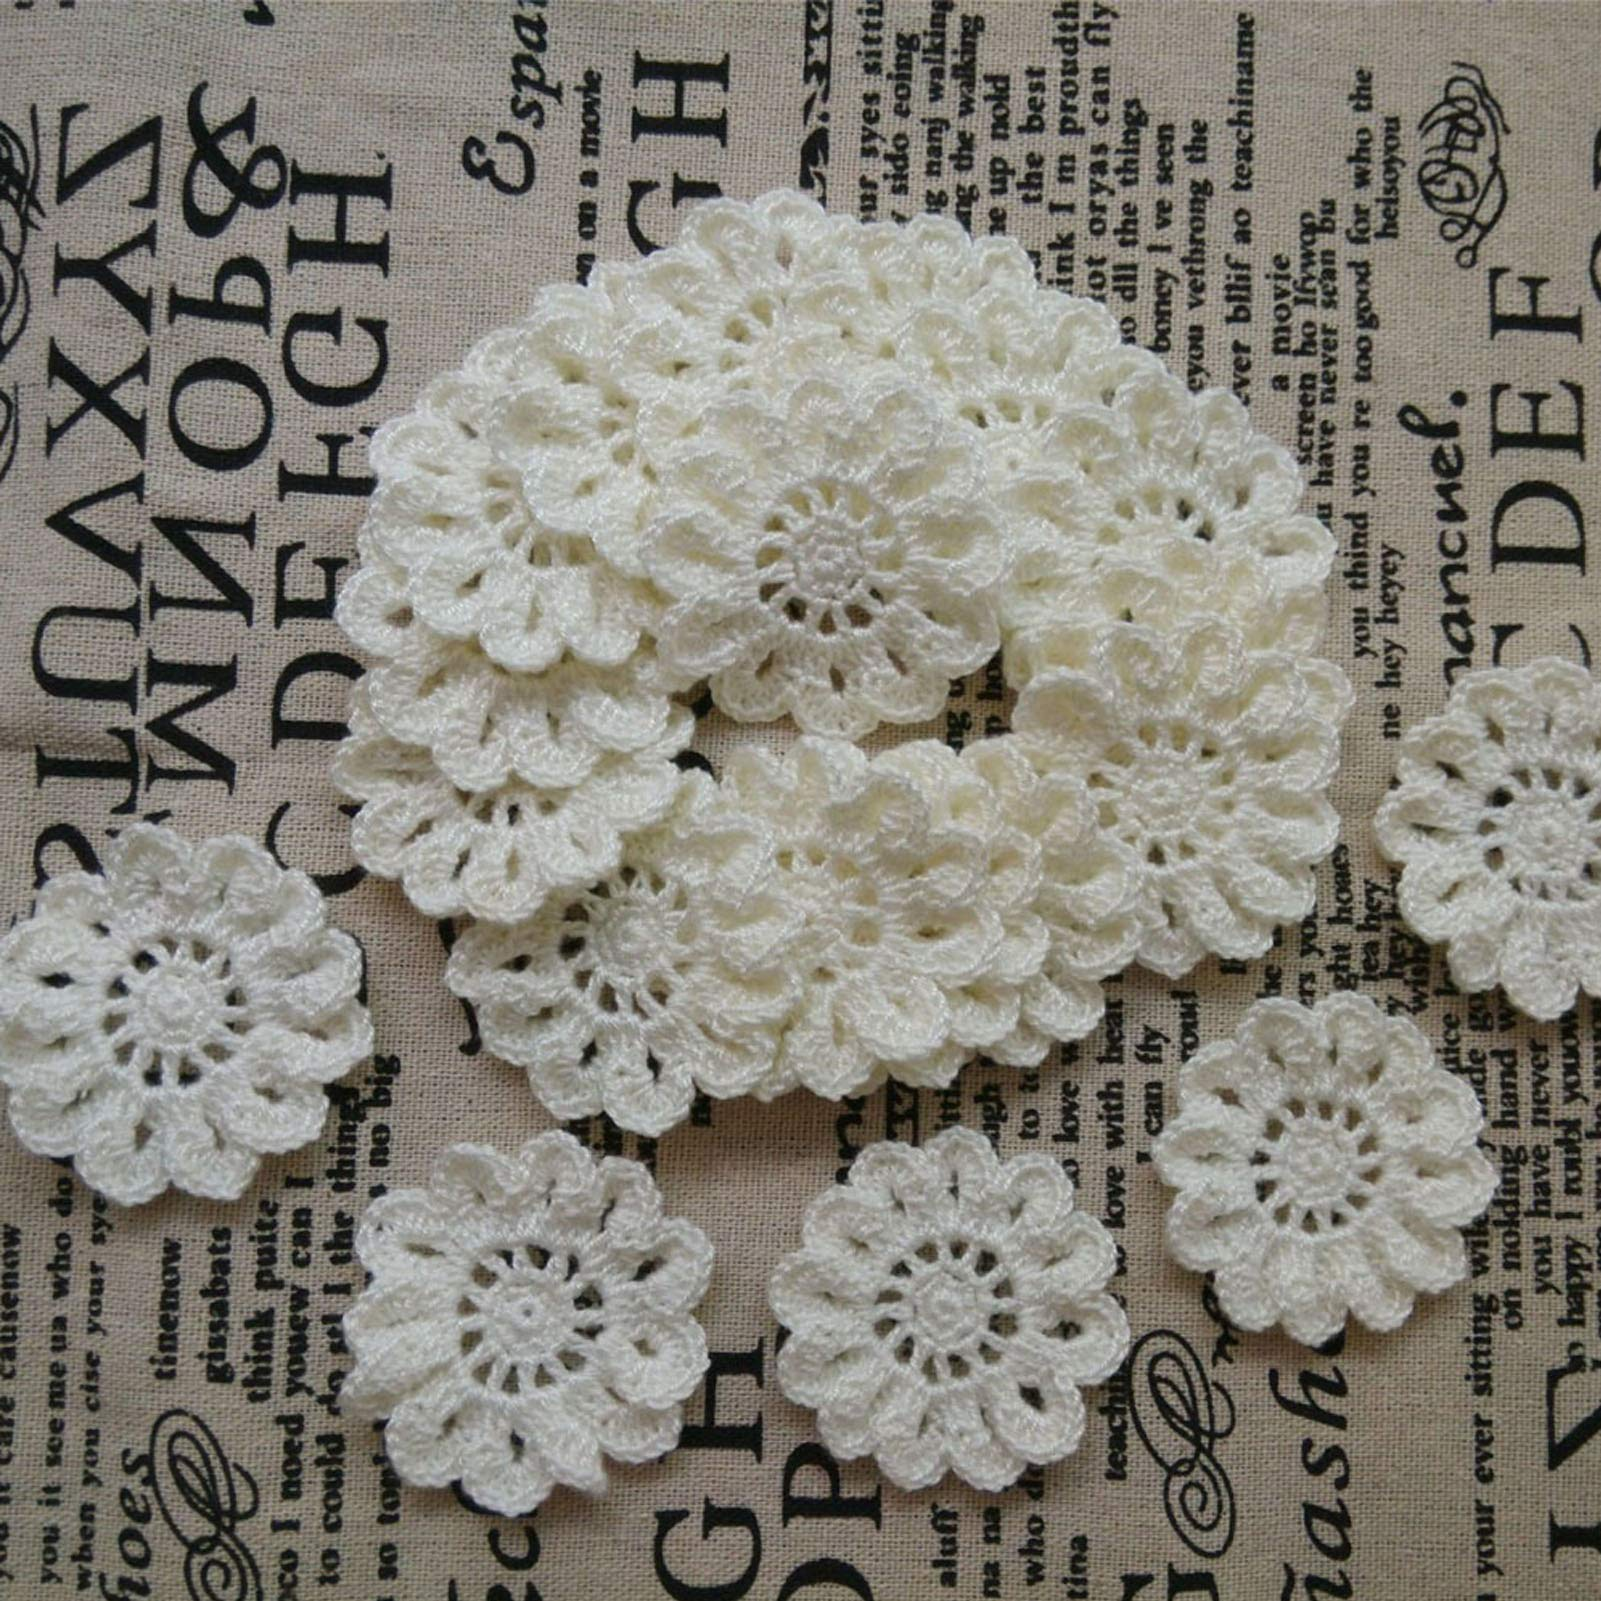 2'' Handmade Crocheted Cotton Cream White Appliques Flower Embellishments for Crafts, Clothing, Headbands, Hats, Gift Package Needs, Pack of 20